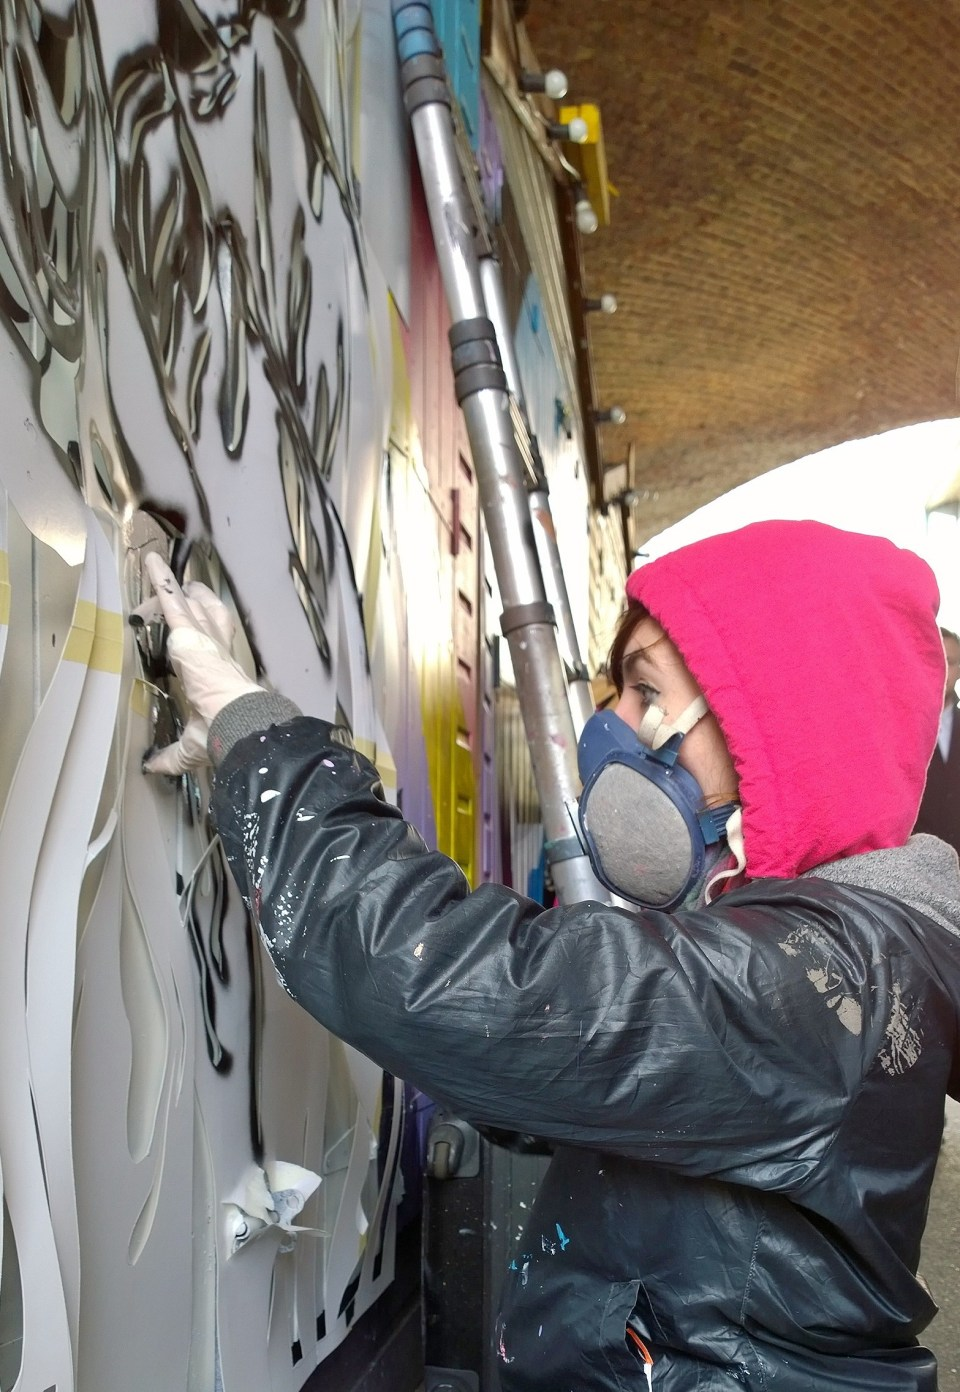 Zabou finishing her mural by adding the all important stencil